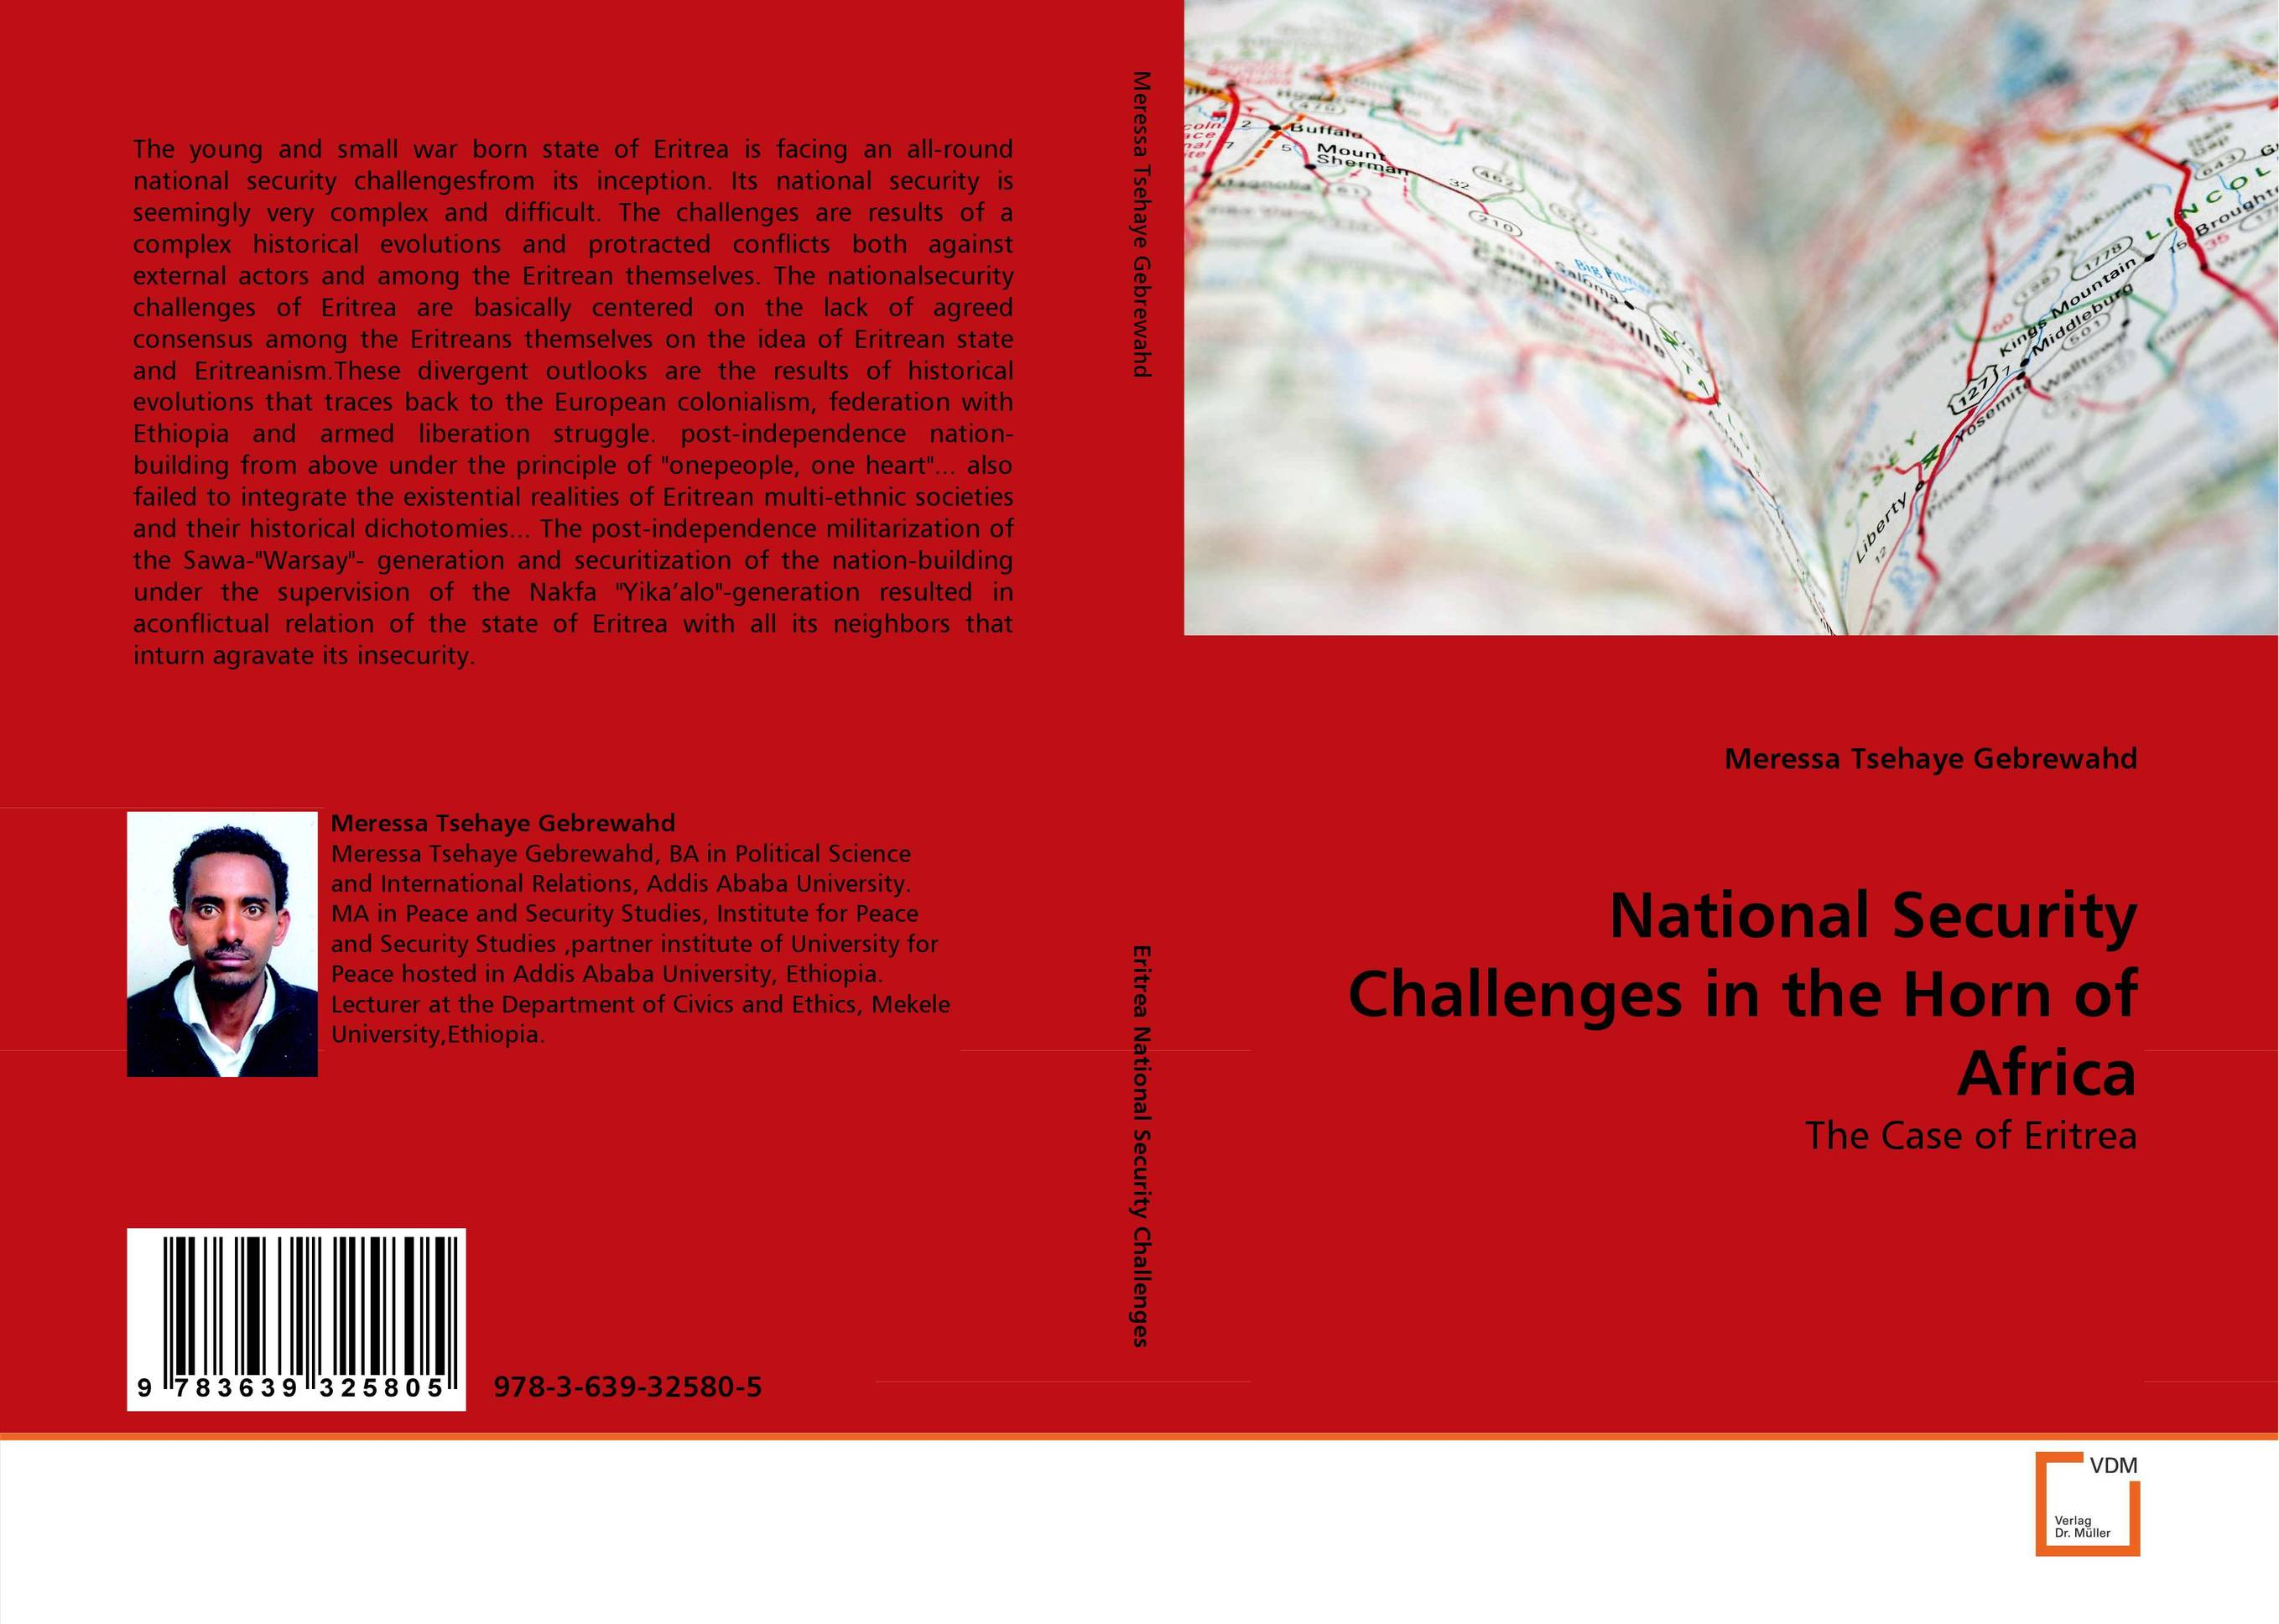 National Security Challenges in the Horn of Africa